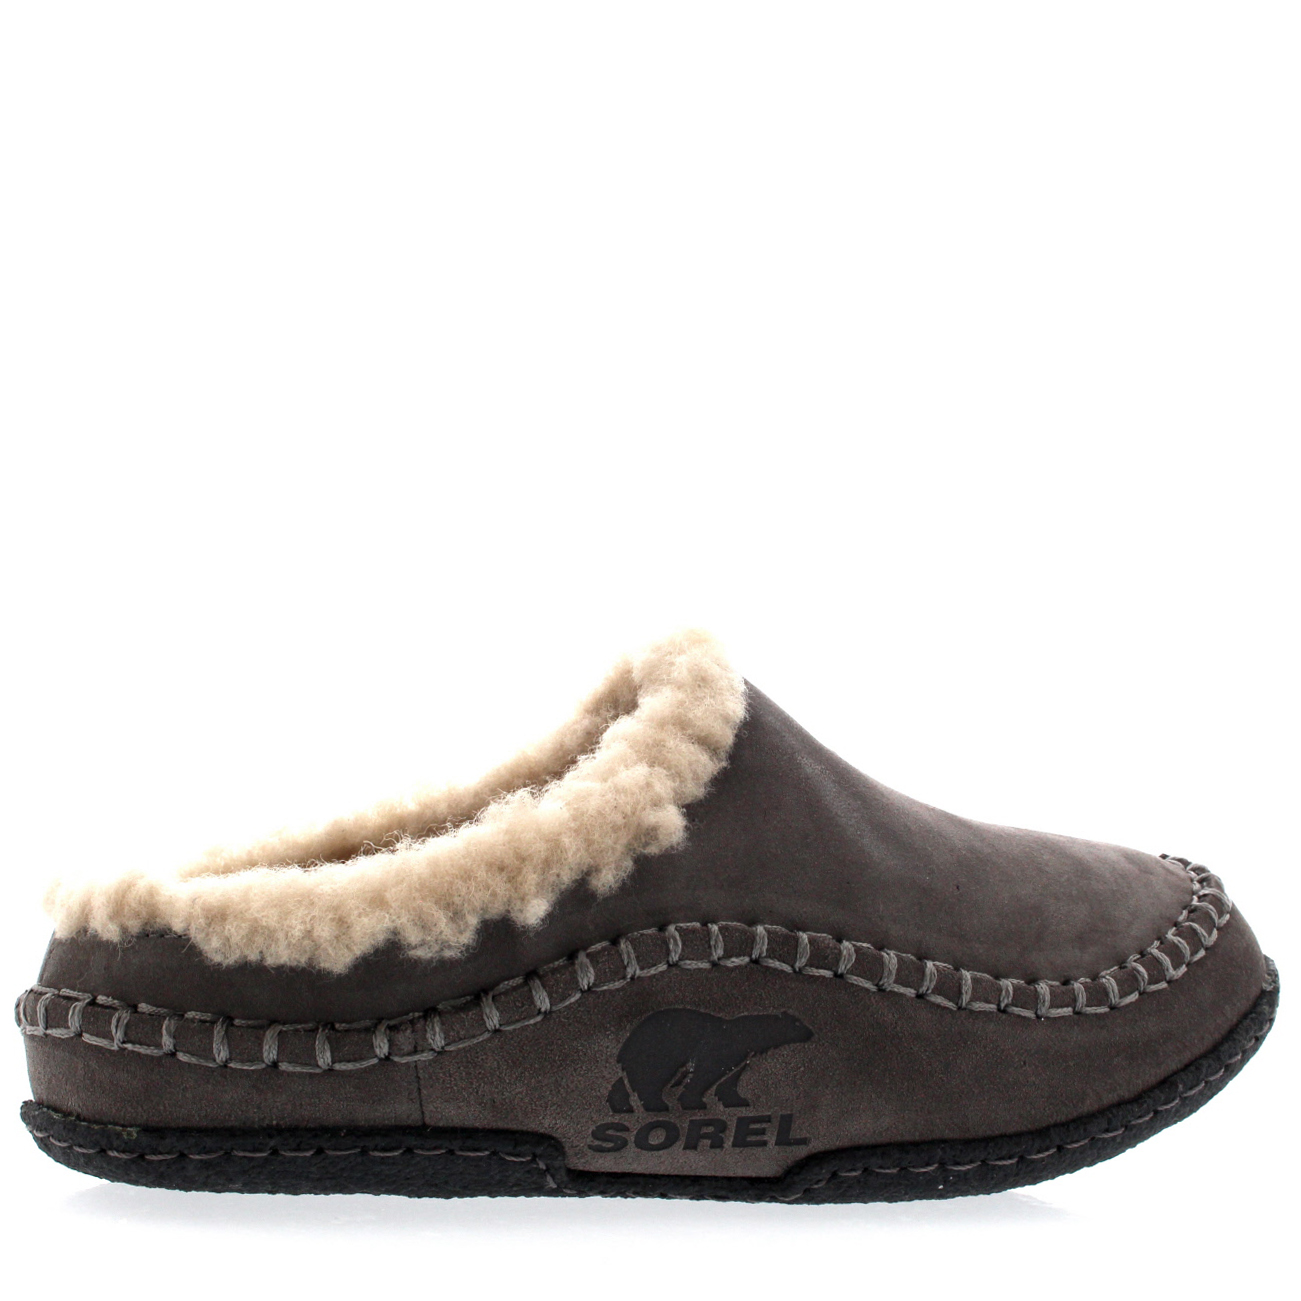 96c19b6949d3 Mens Sorel Falcon Ridge Fur Lined Slip On Mules Warm Winter Slippers ...